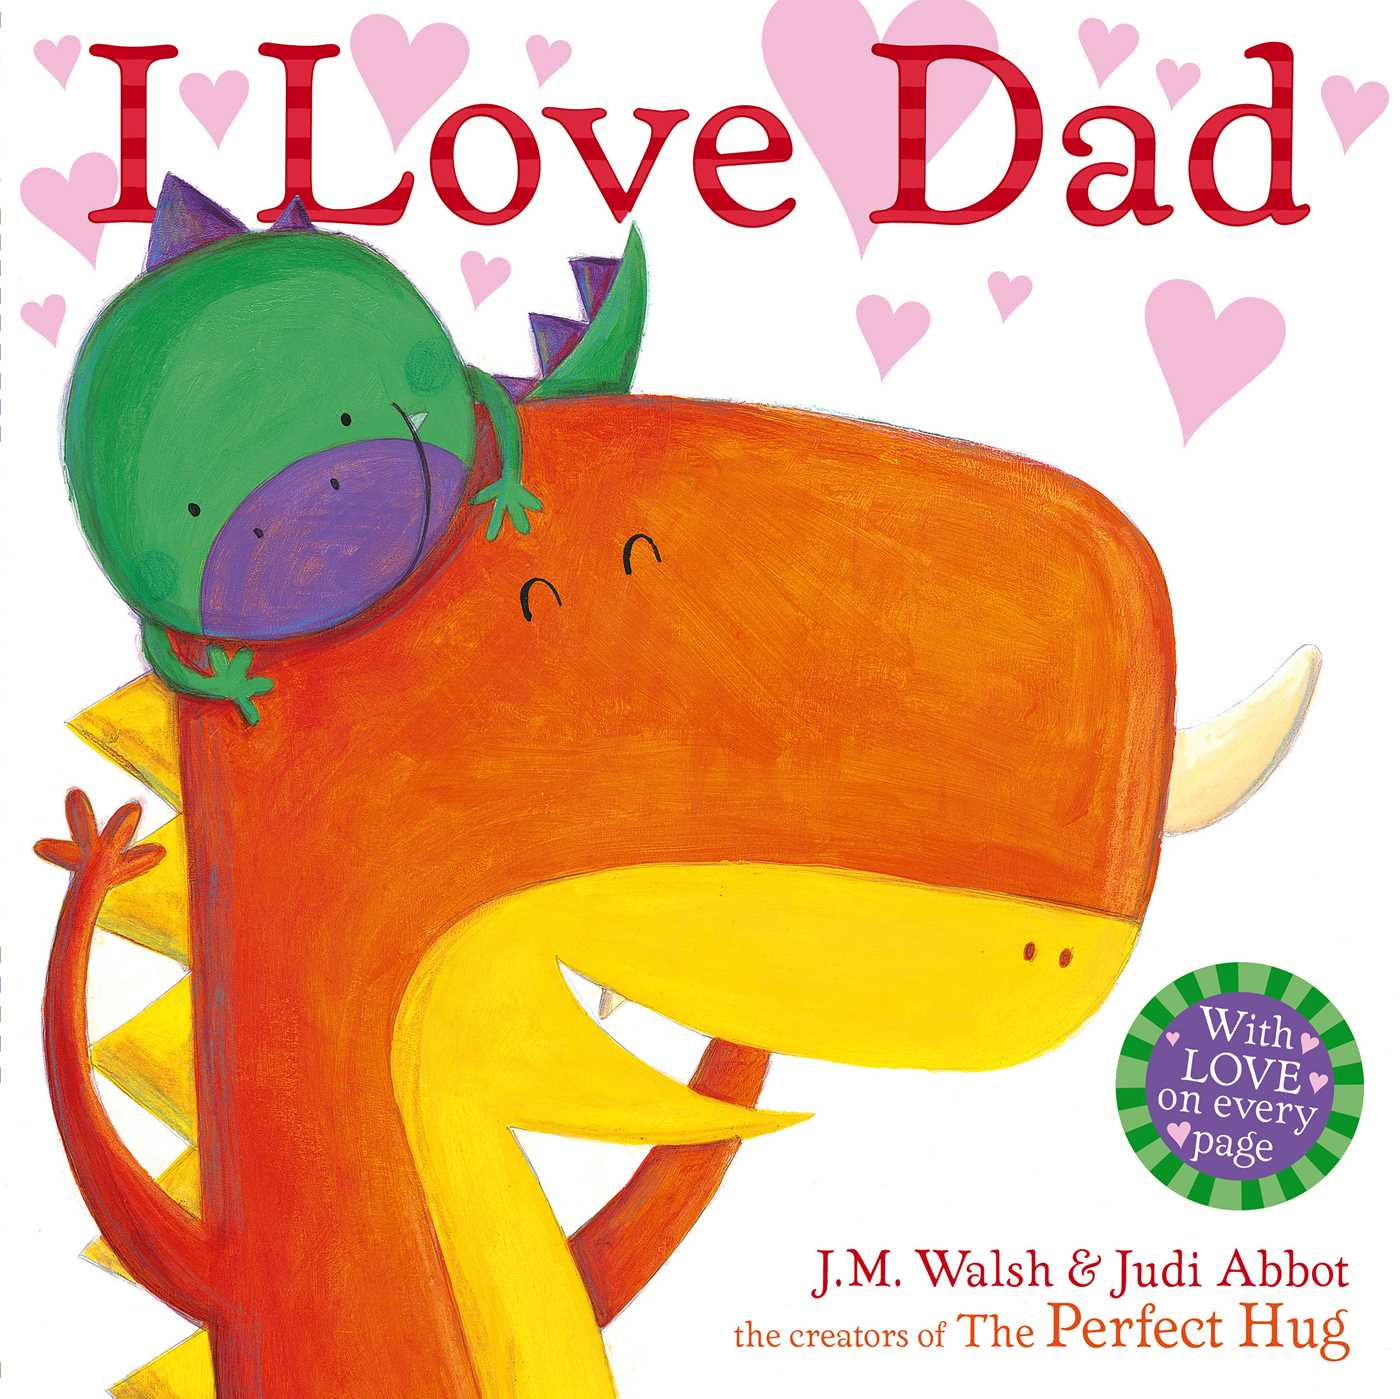 I-love-dad-9781471123627_hr